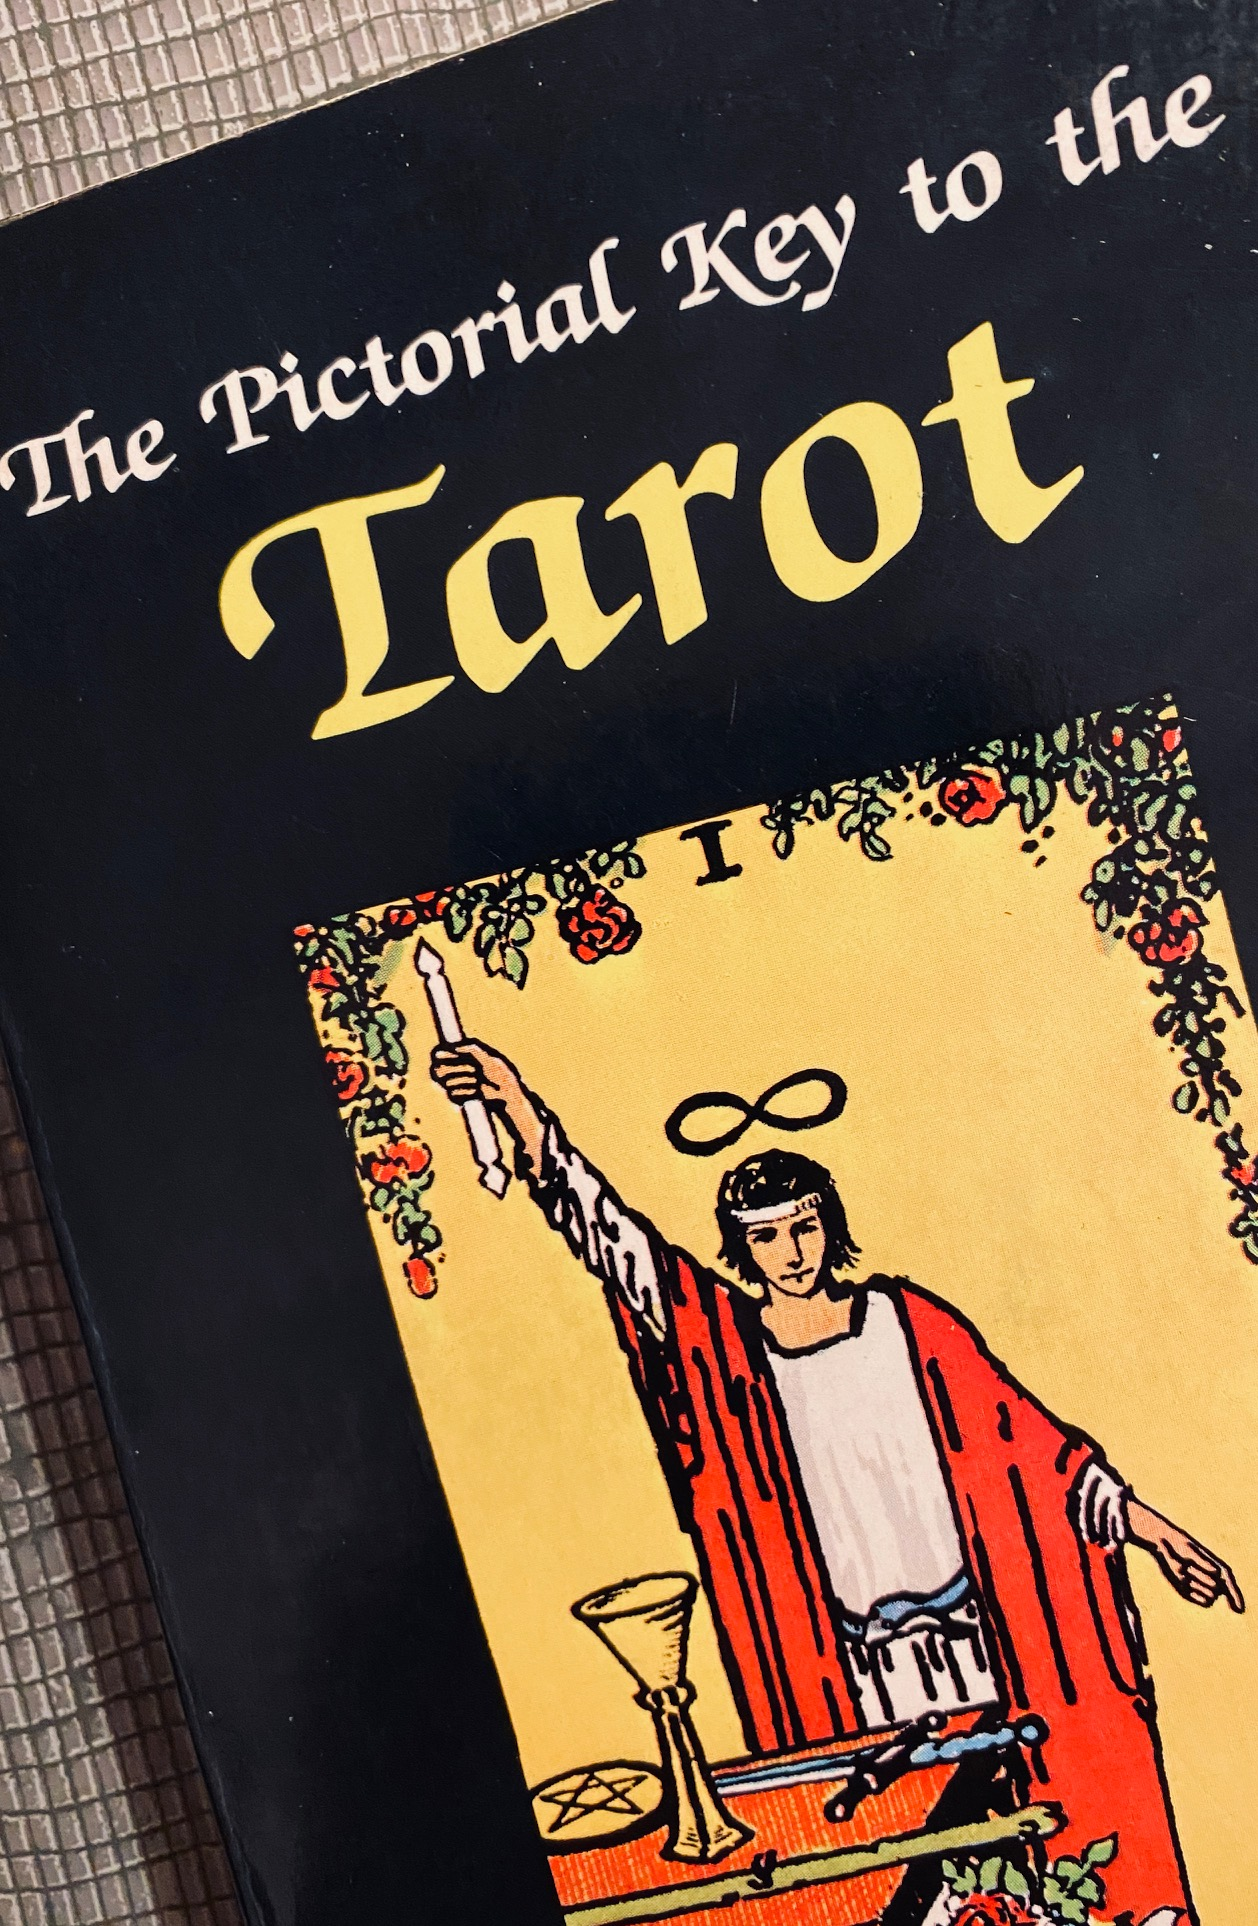 1000 books: Pictorial Key to the Tarot.